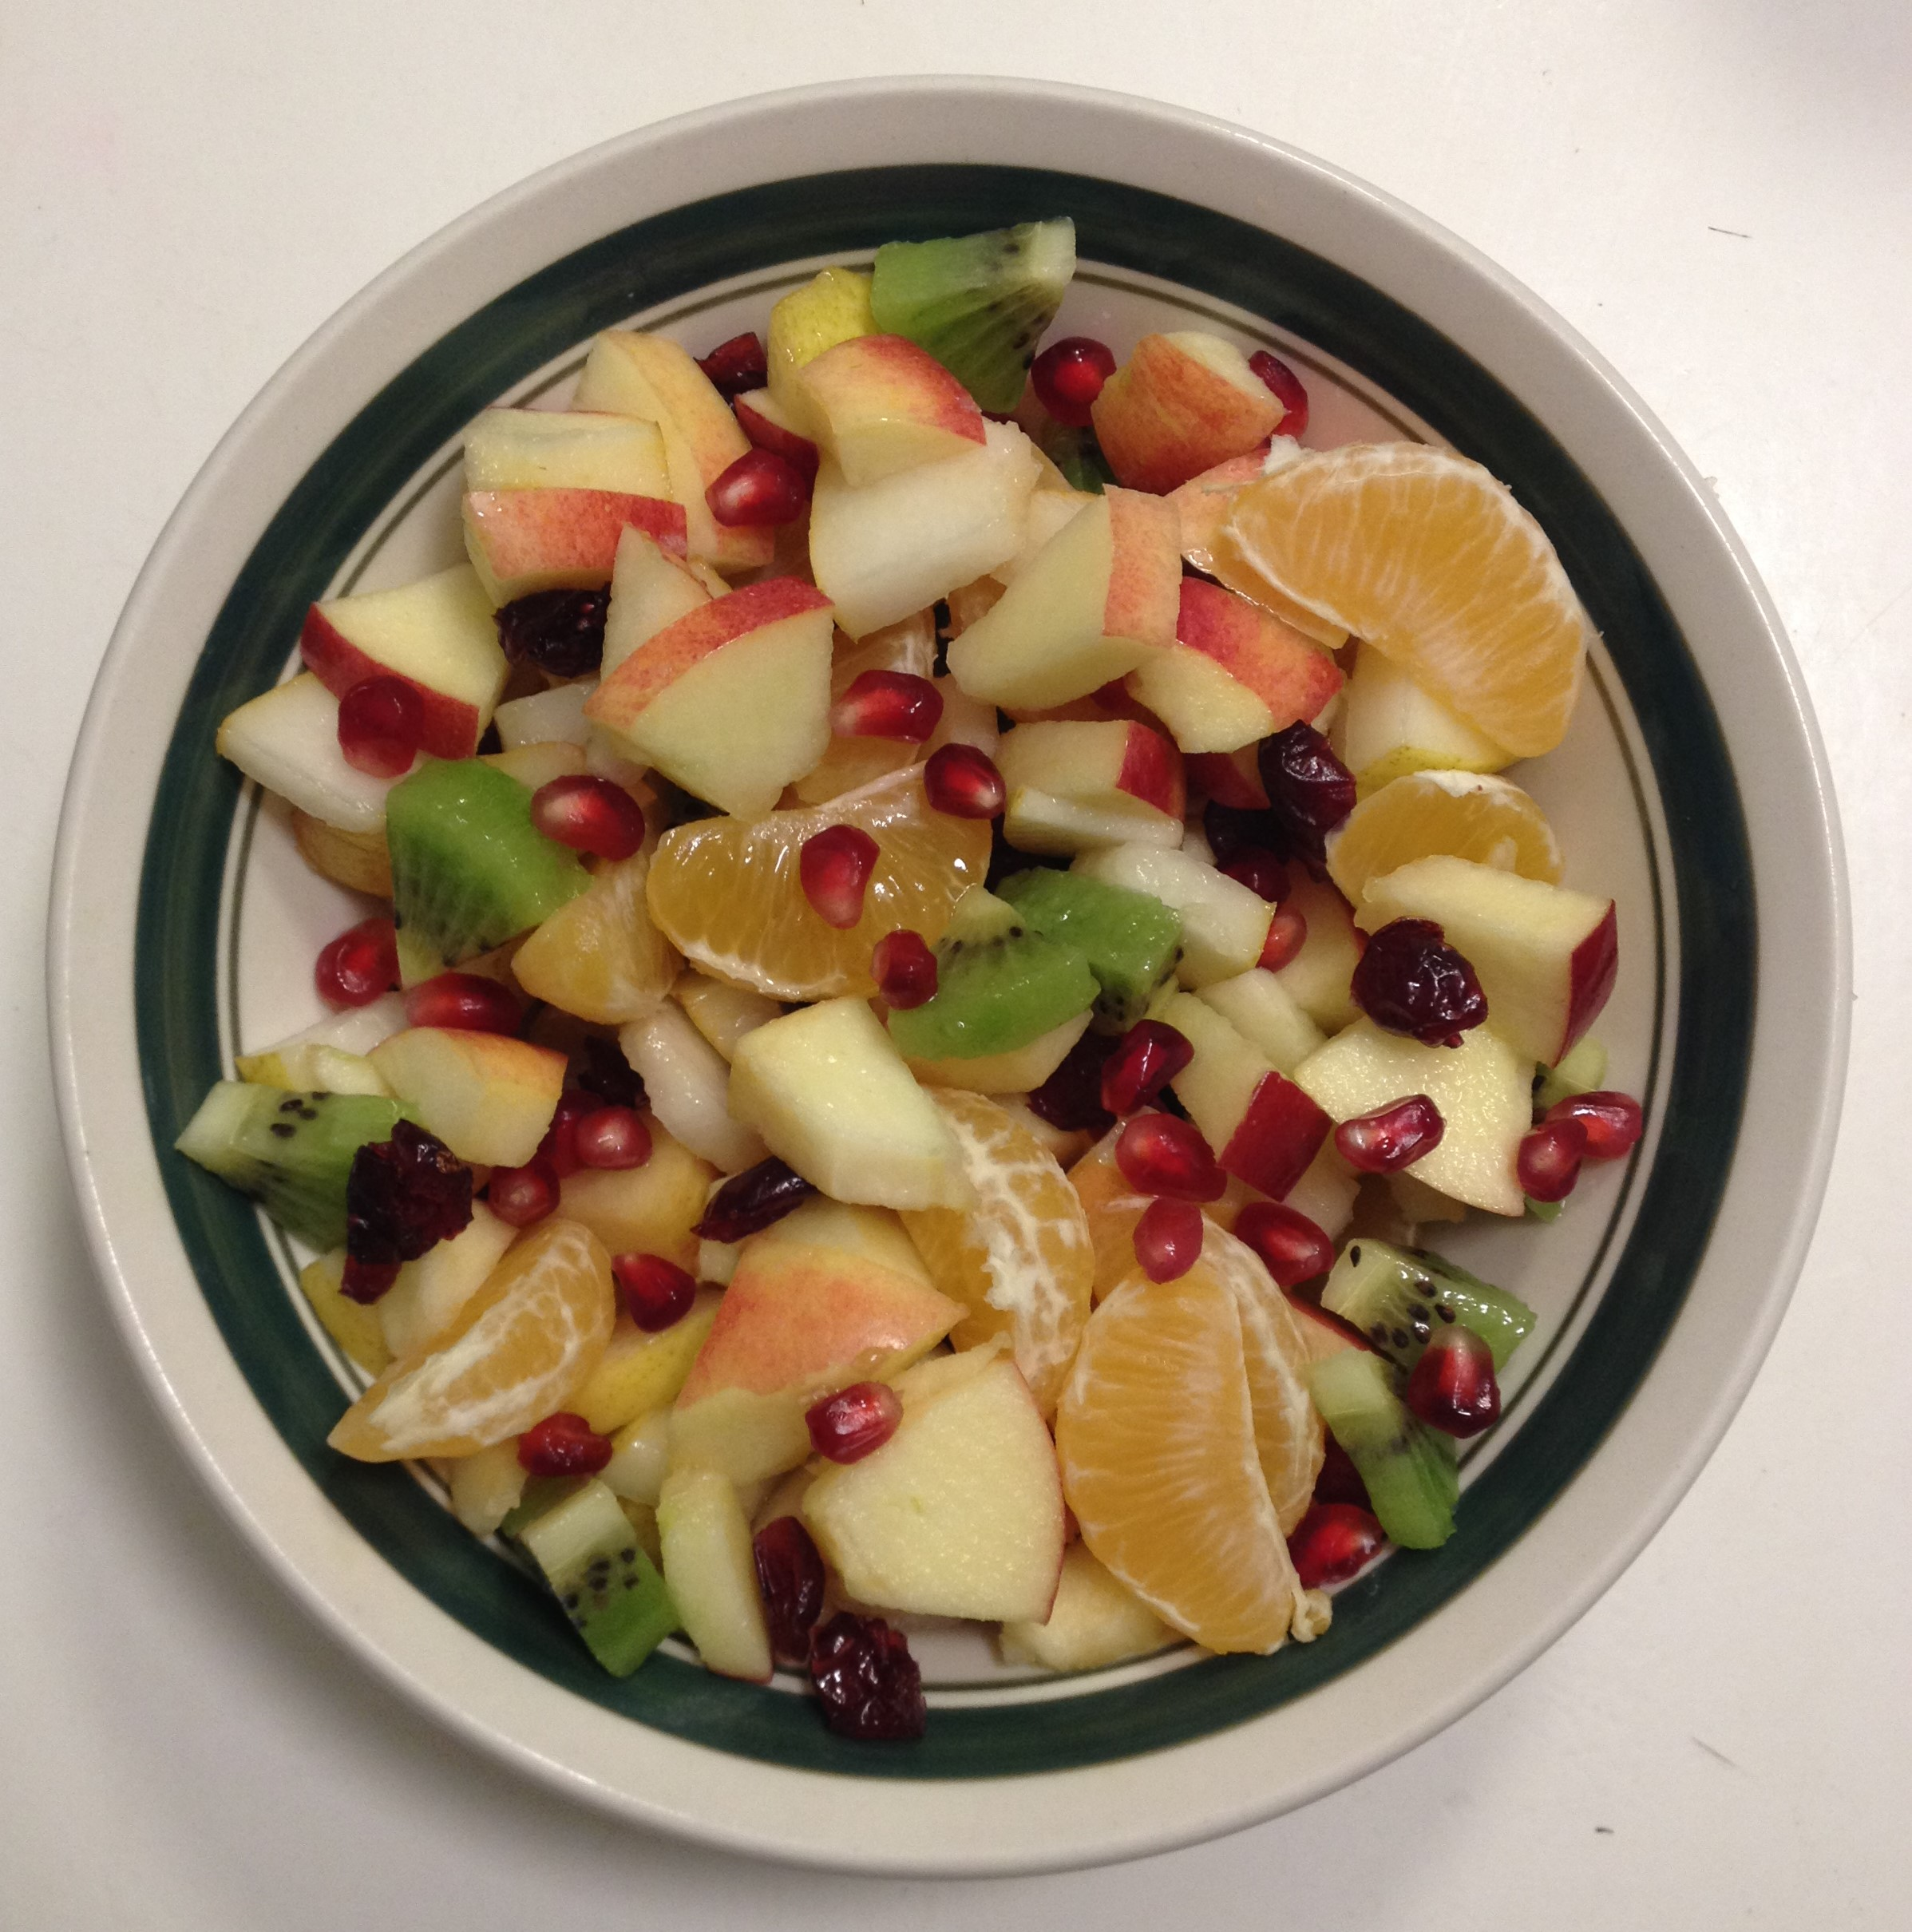 Colorful Winter Fruit Salad